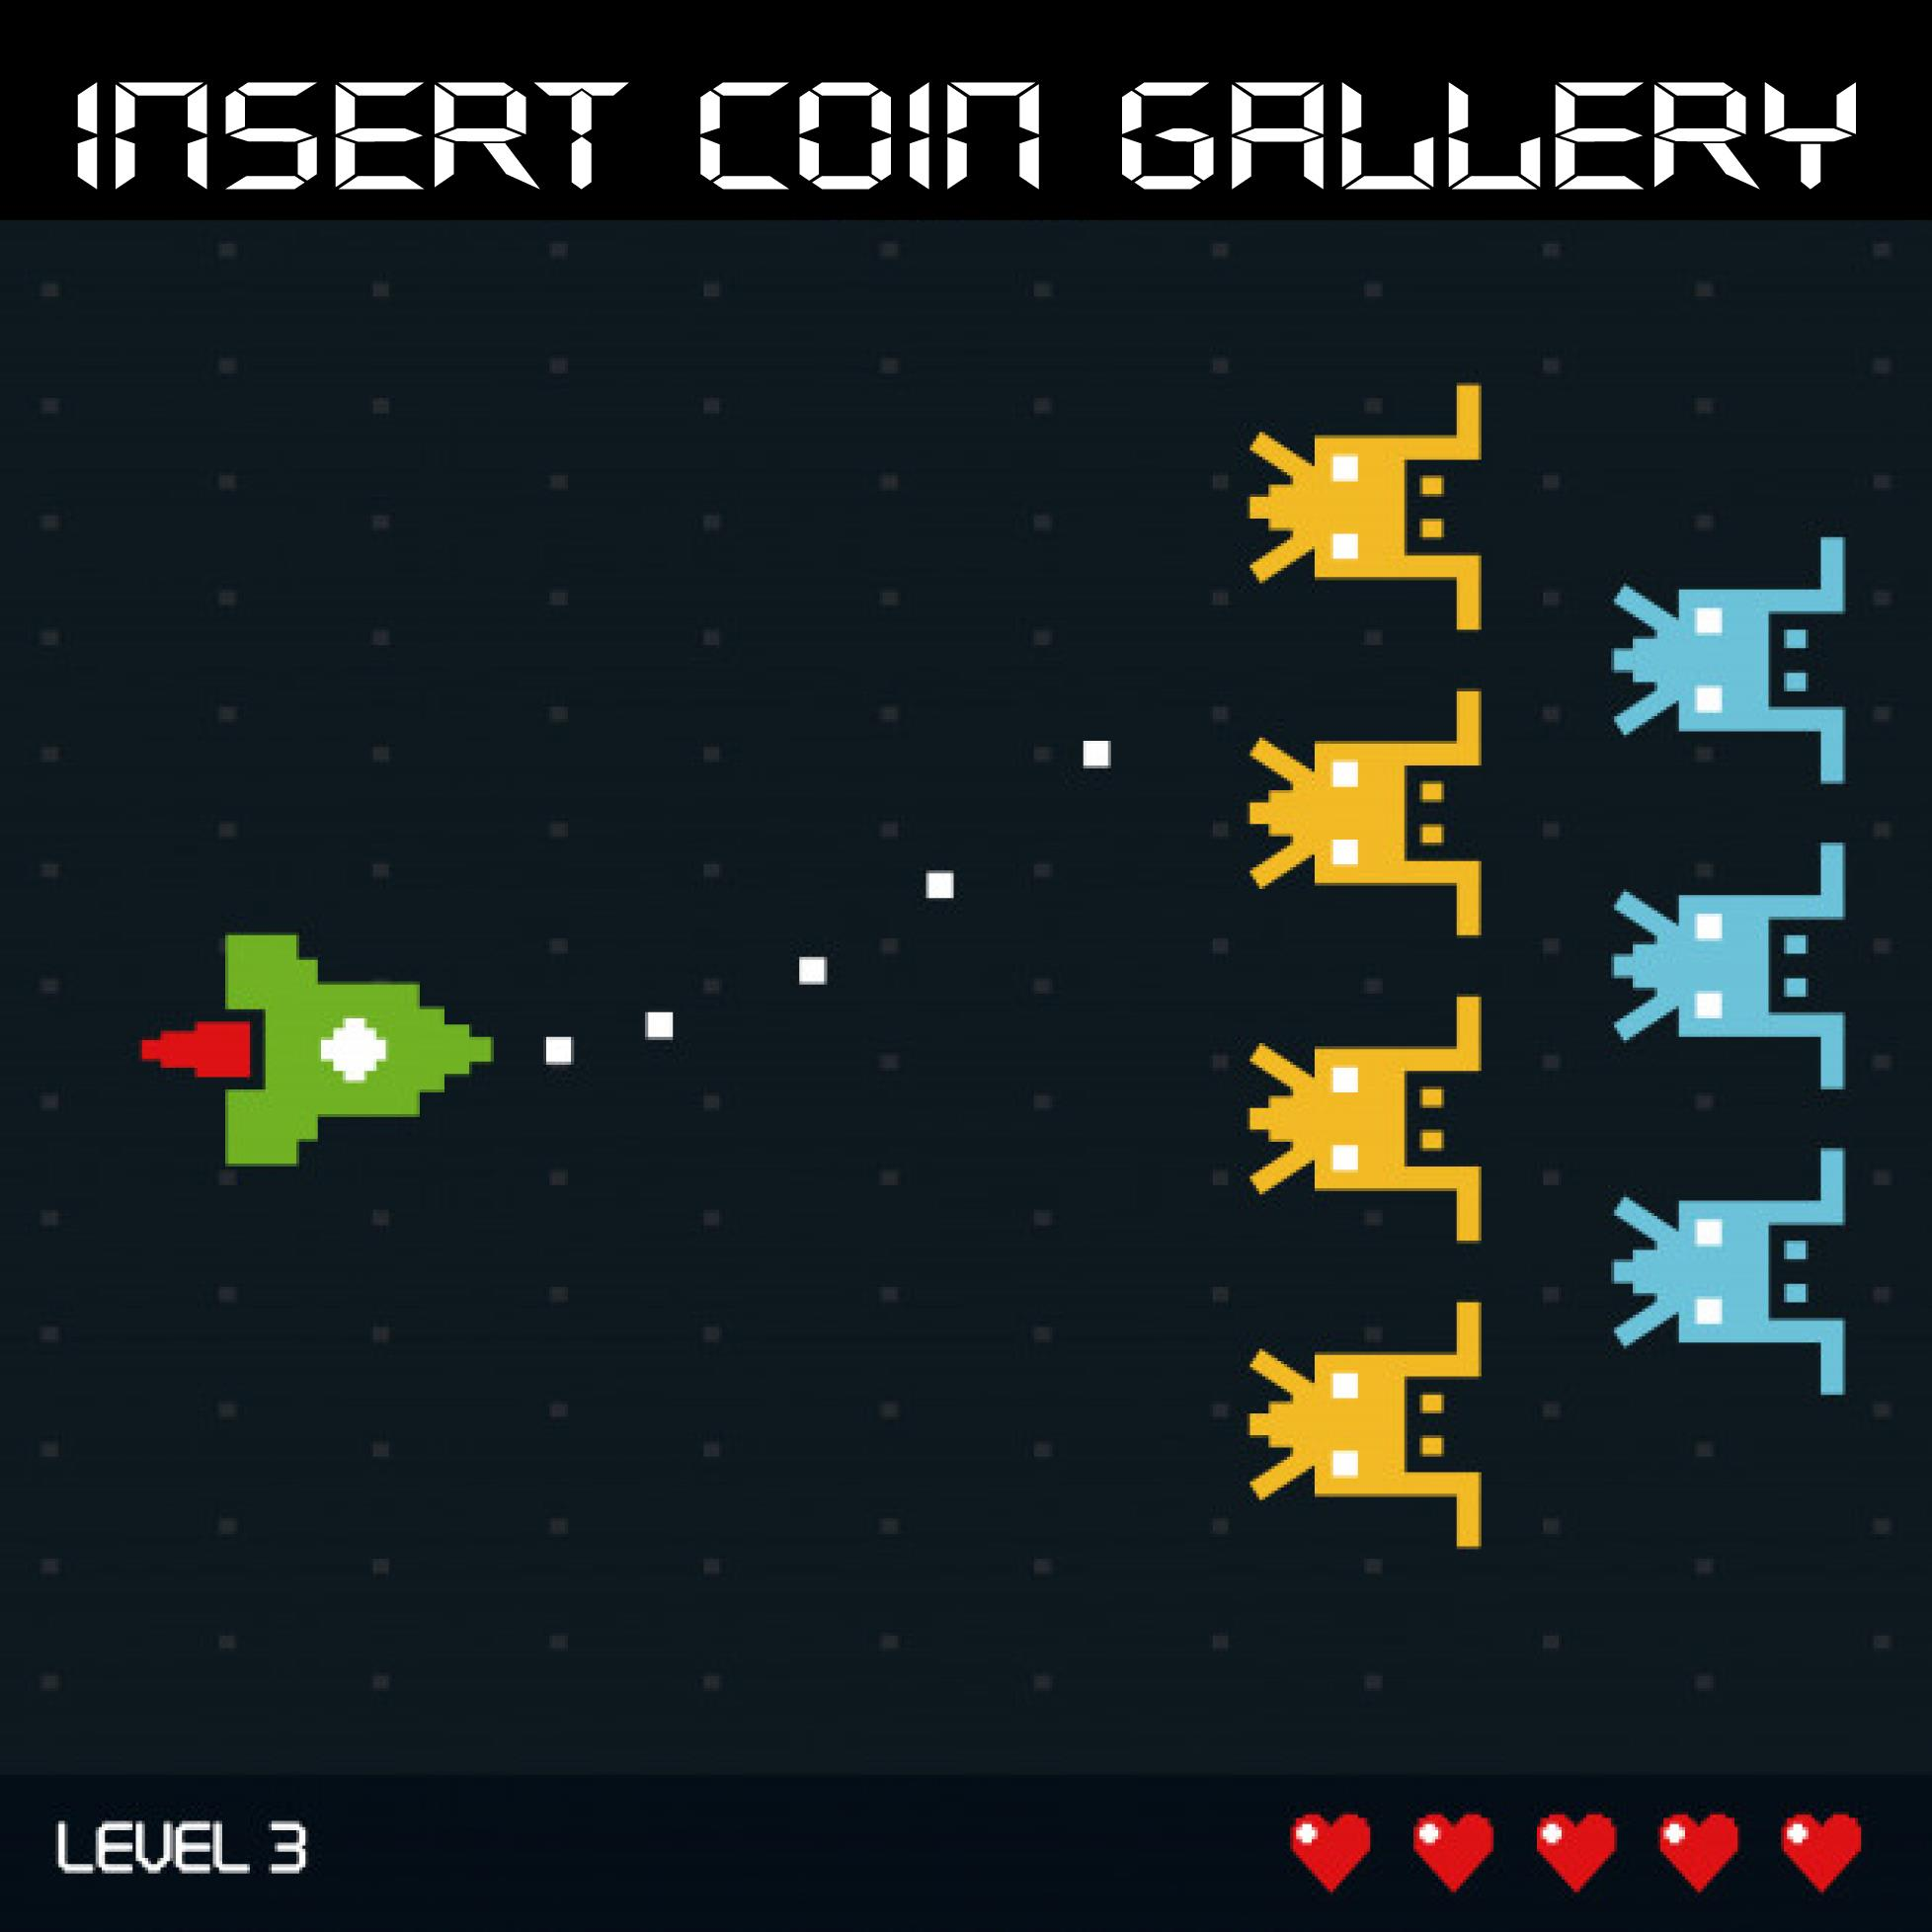 Insert Coin Gallery